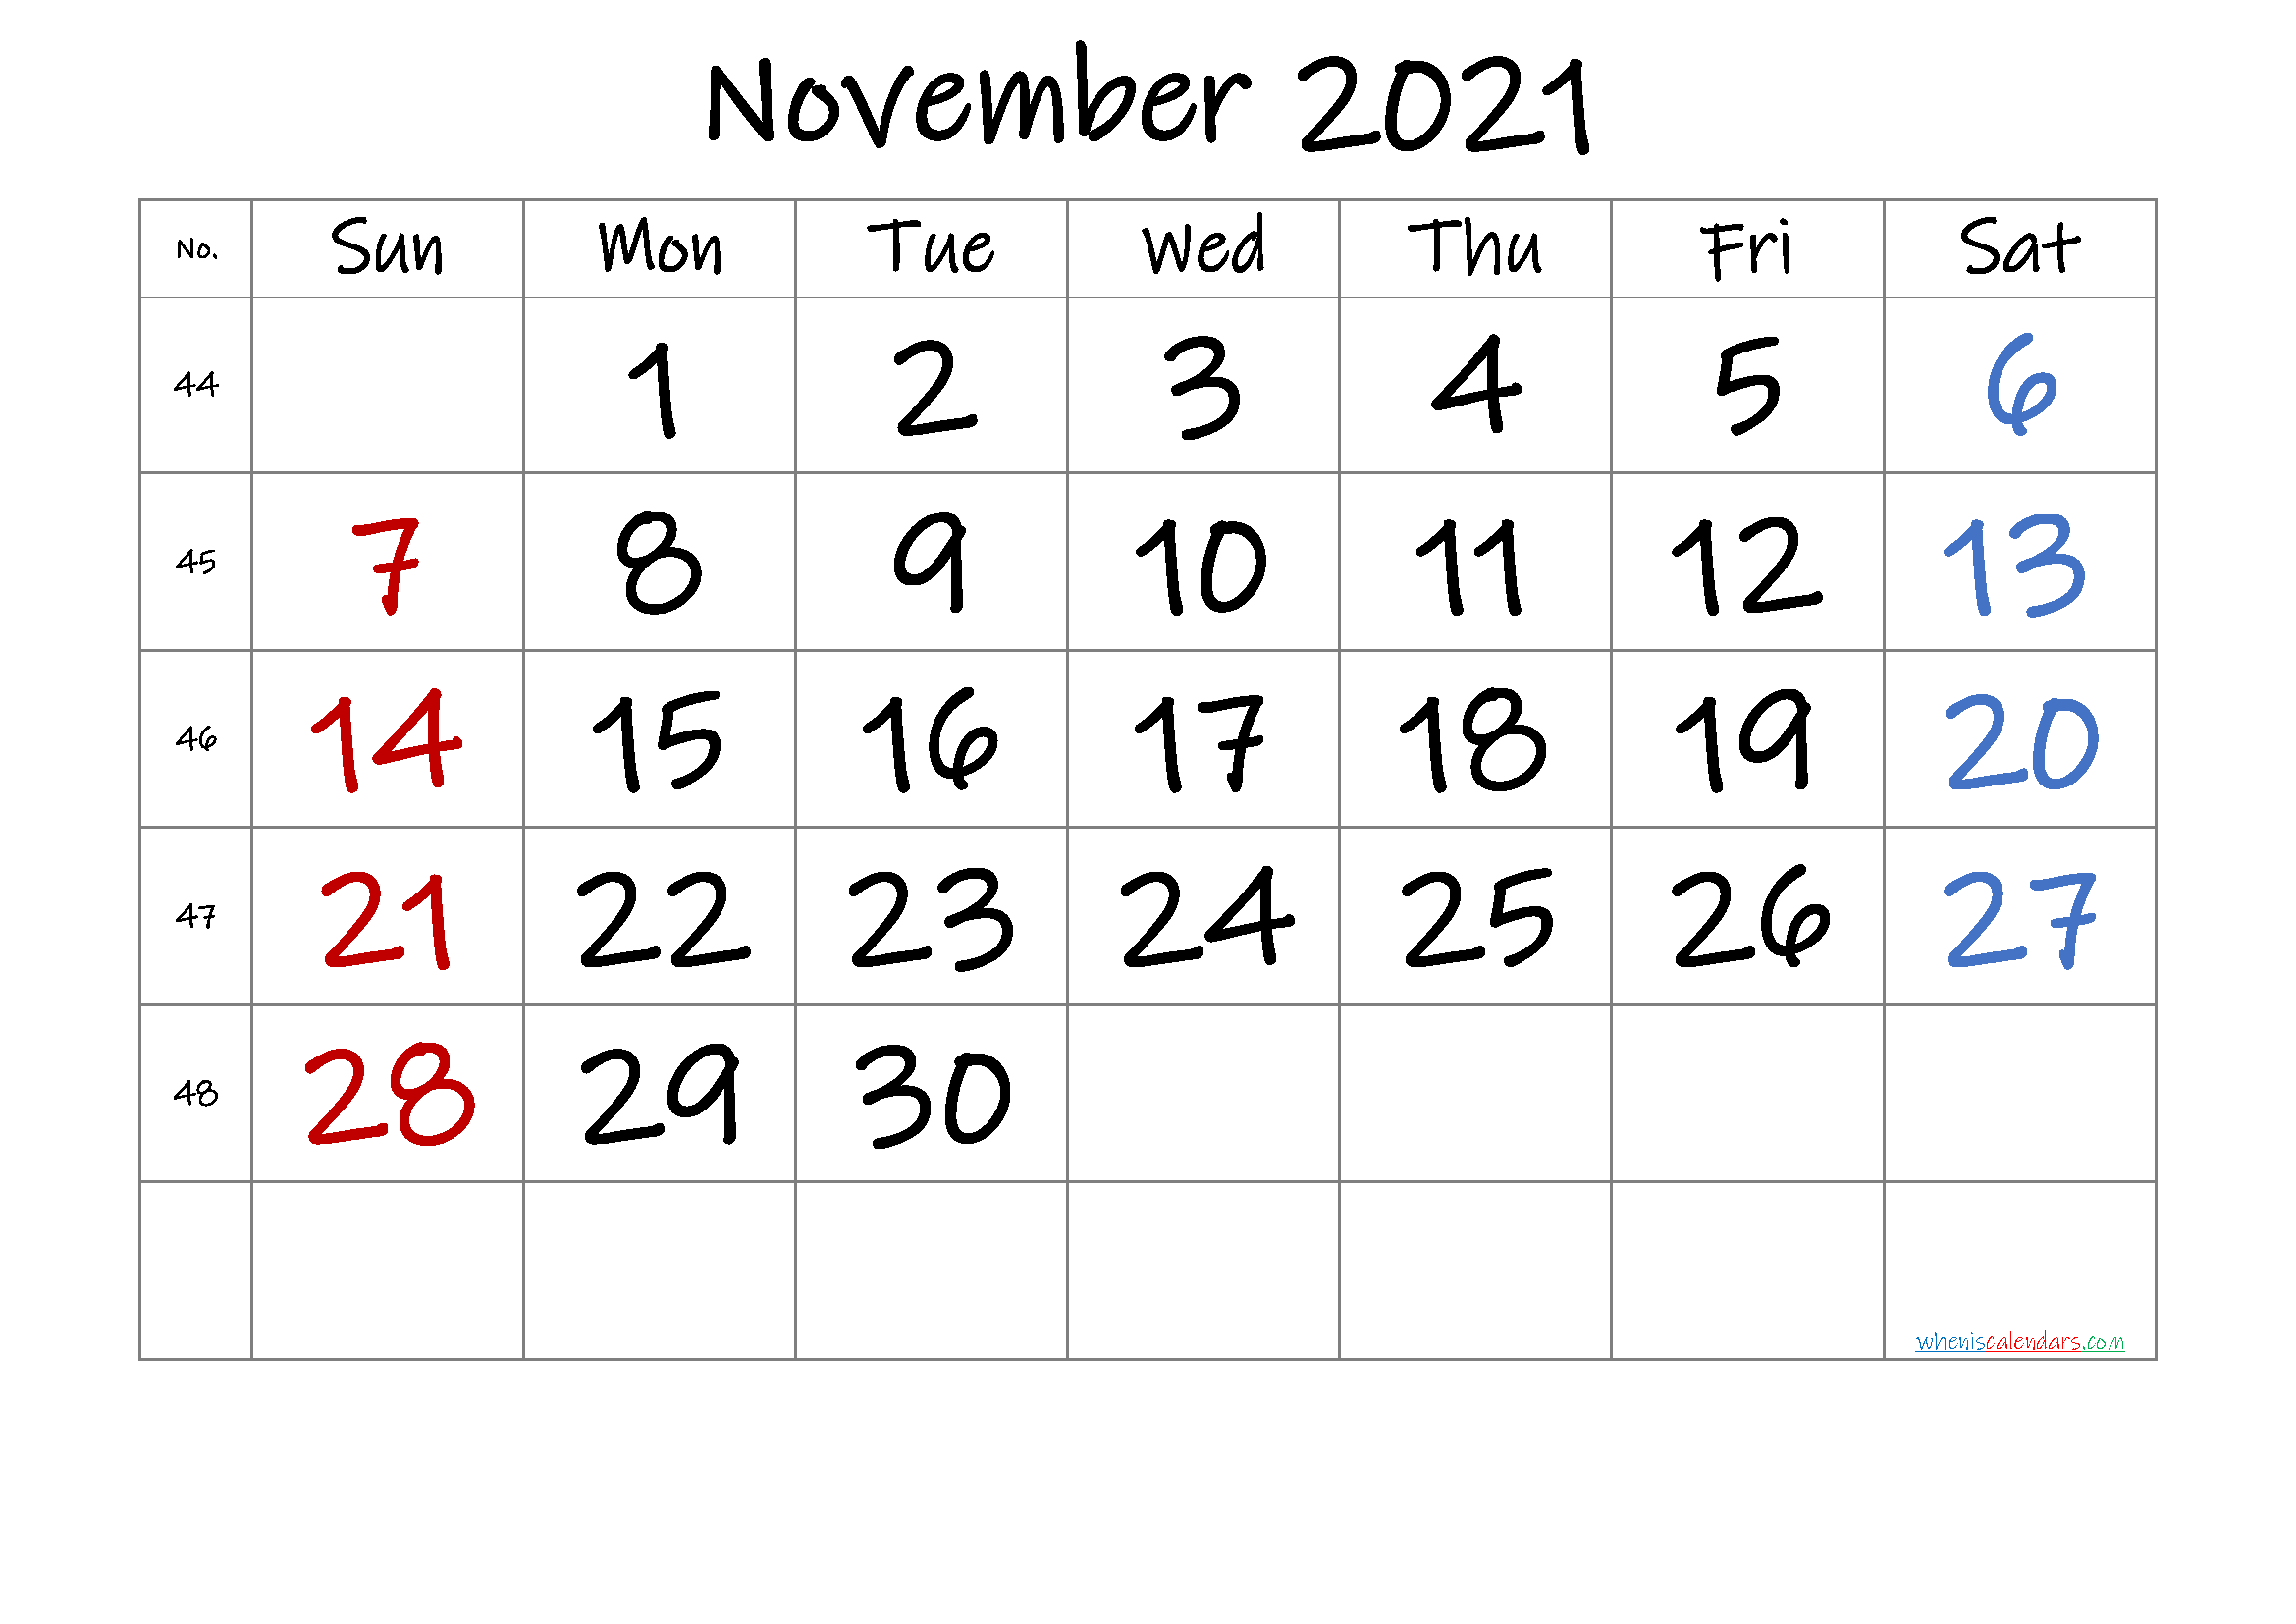 Free November 2021 Calendar with Week Numbers